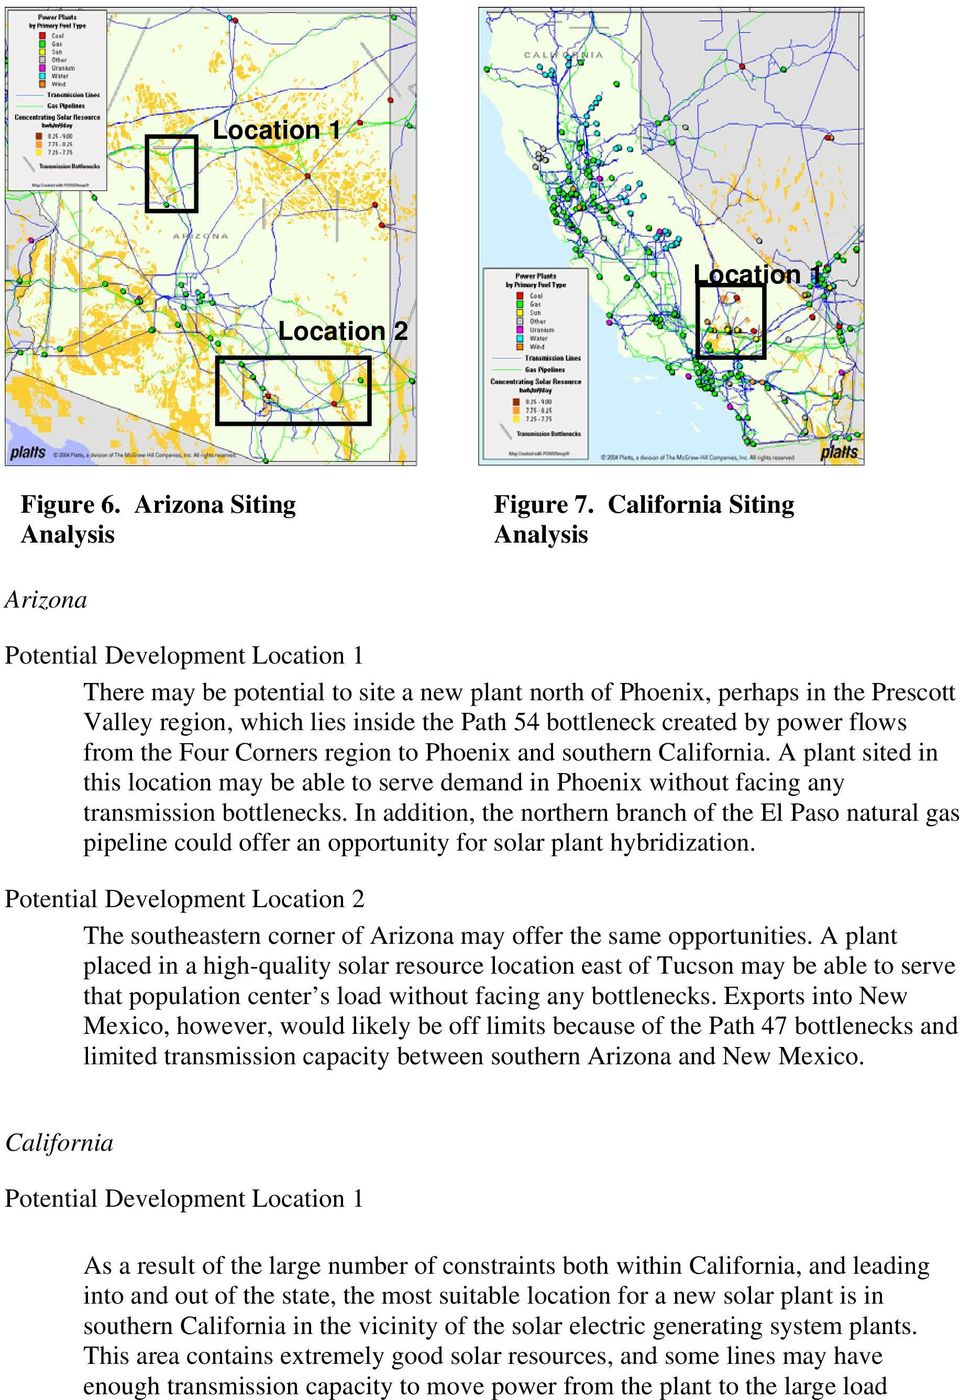 Four Corners region to Phoenix and southern California. A plant sited in this location may be able to serve demand in Phoenix without facing any transmission bottlenecks.